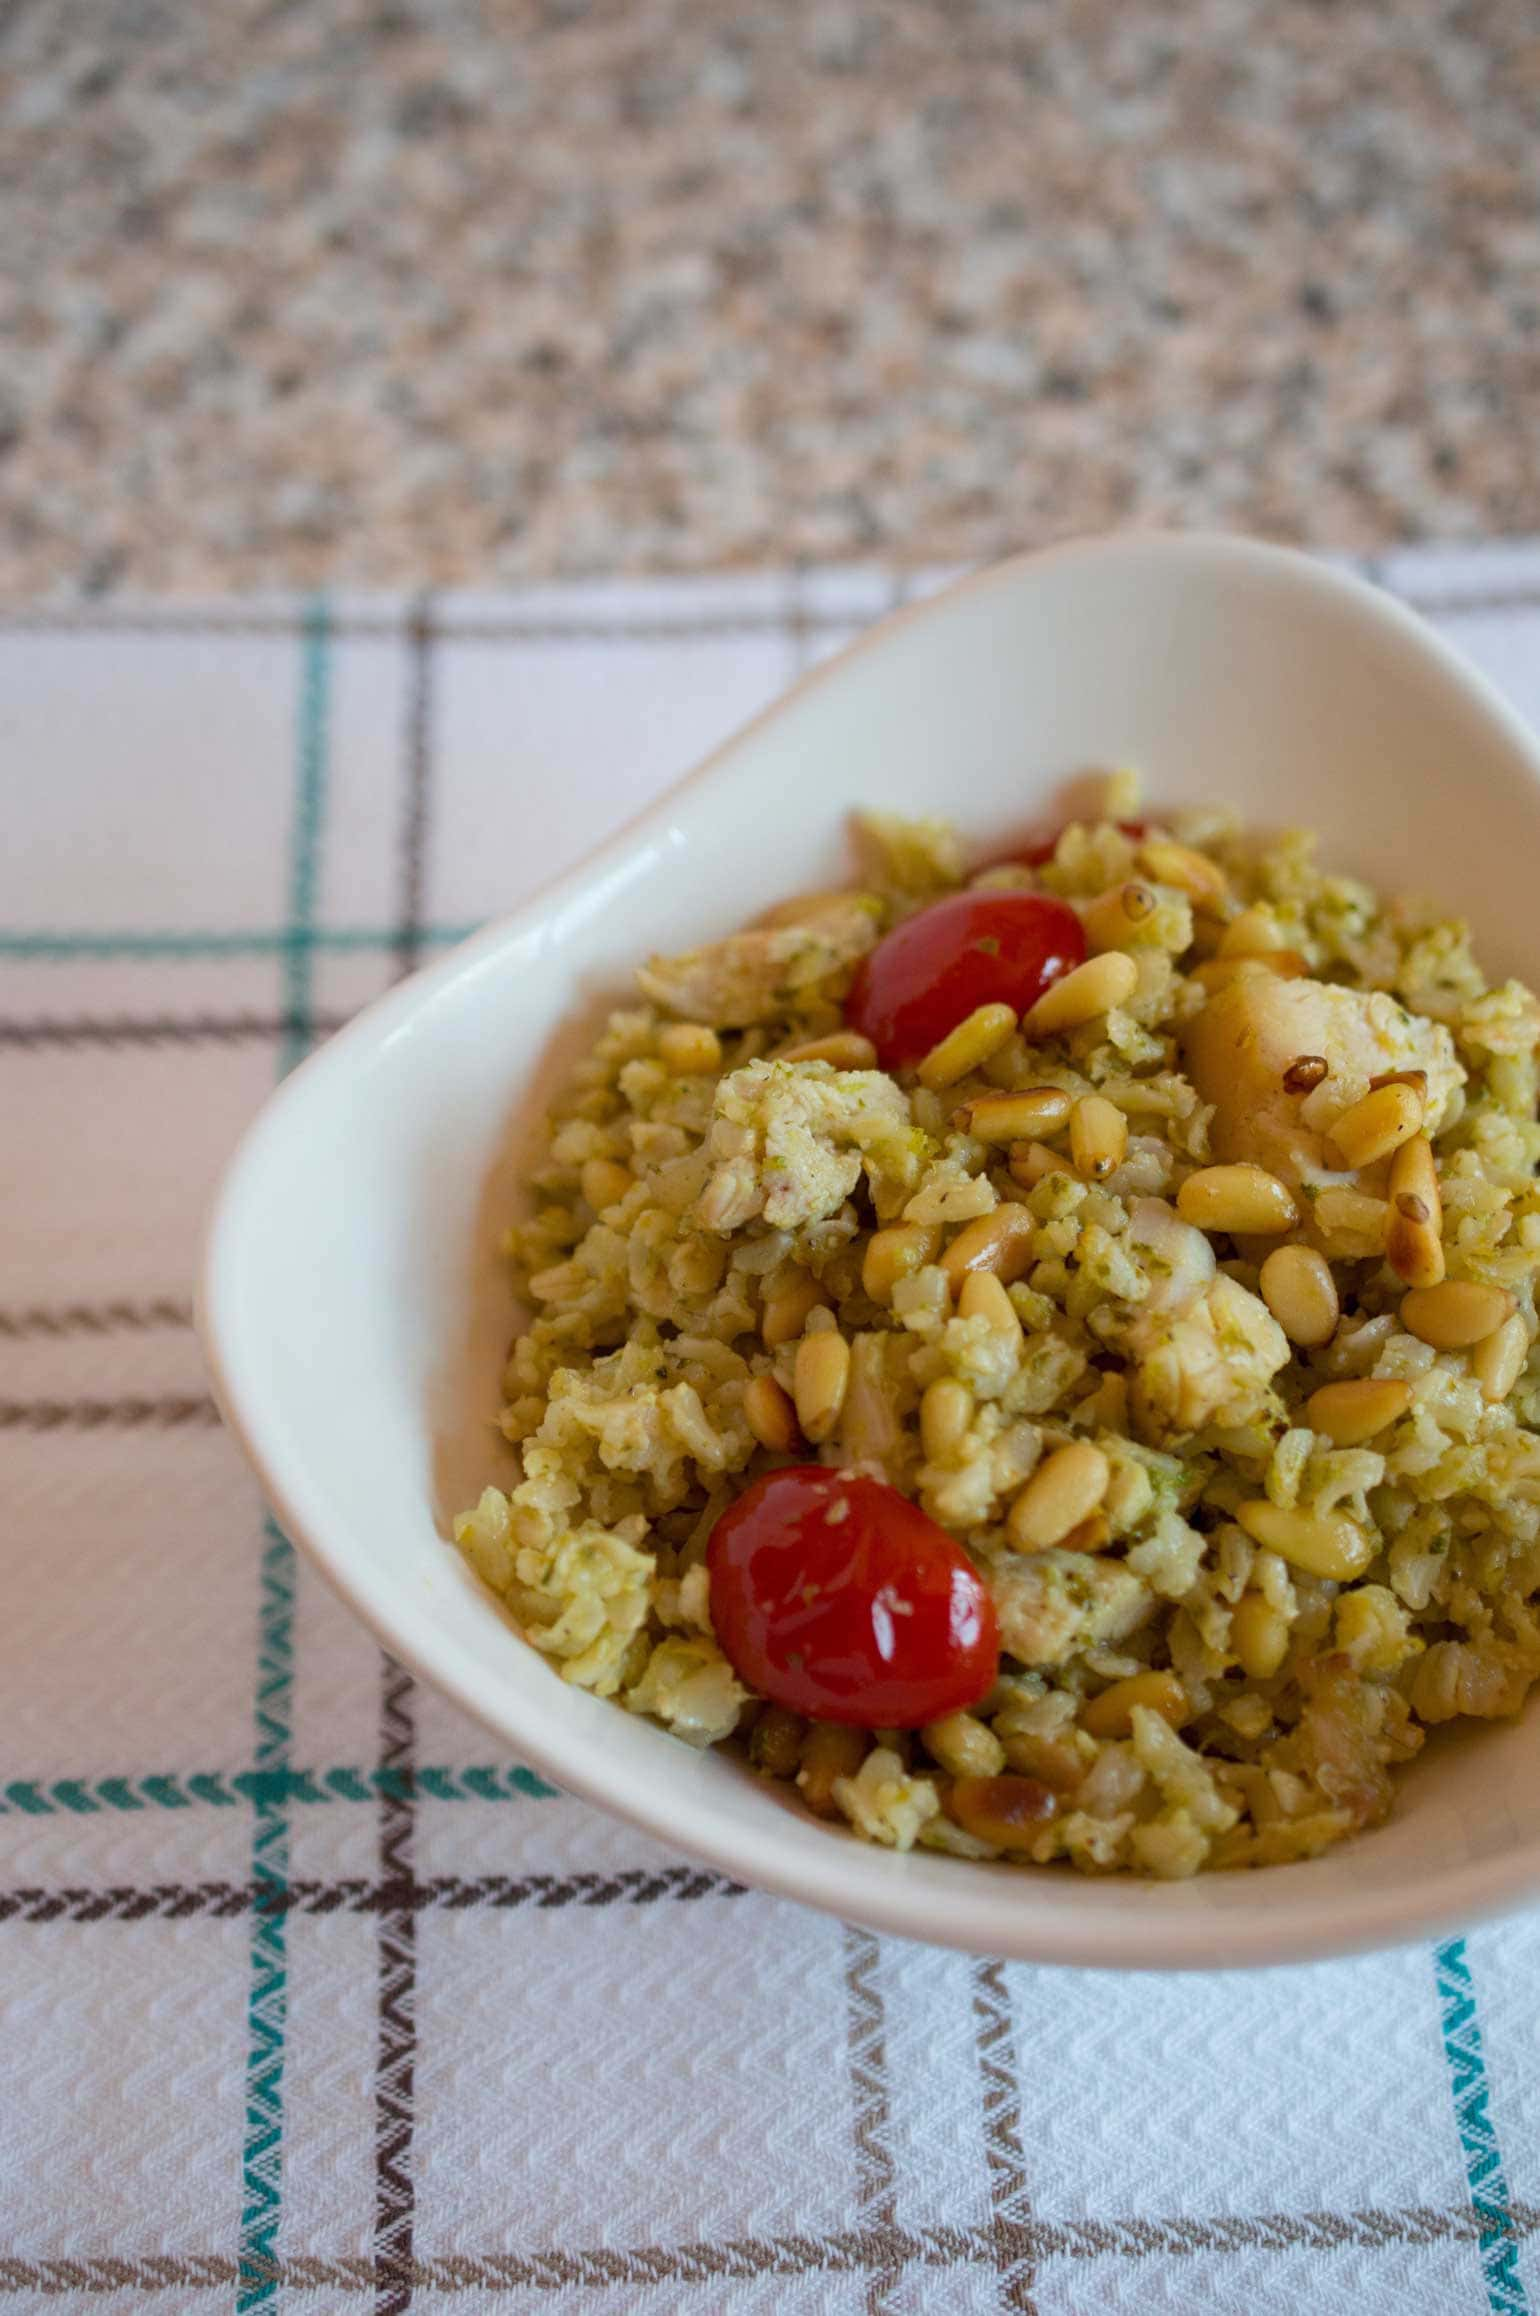 Pesto Rice with Chicken, Tomatoes and Pine Nuts, a 6-ingredient Costco hack you can make in 30 minutes! Quick, easy and ultra-tasty!